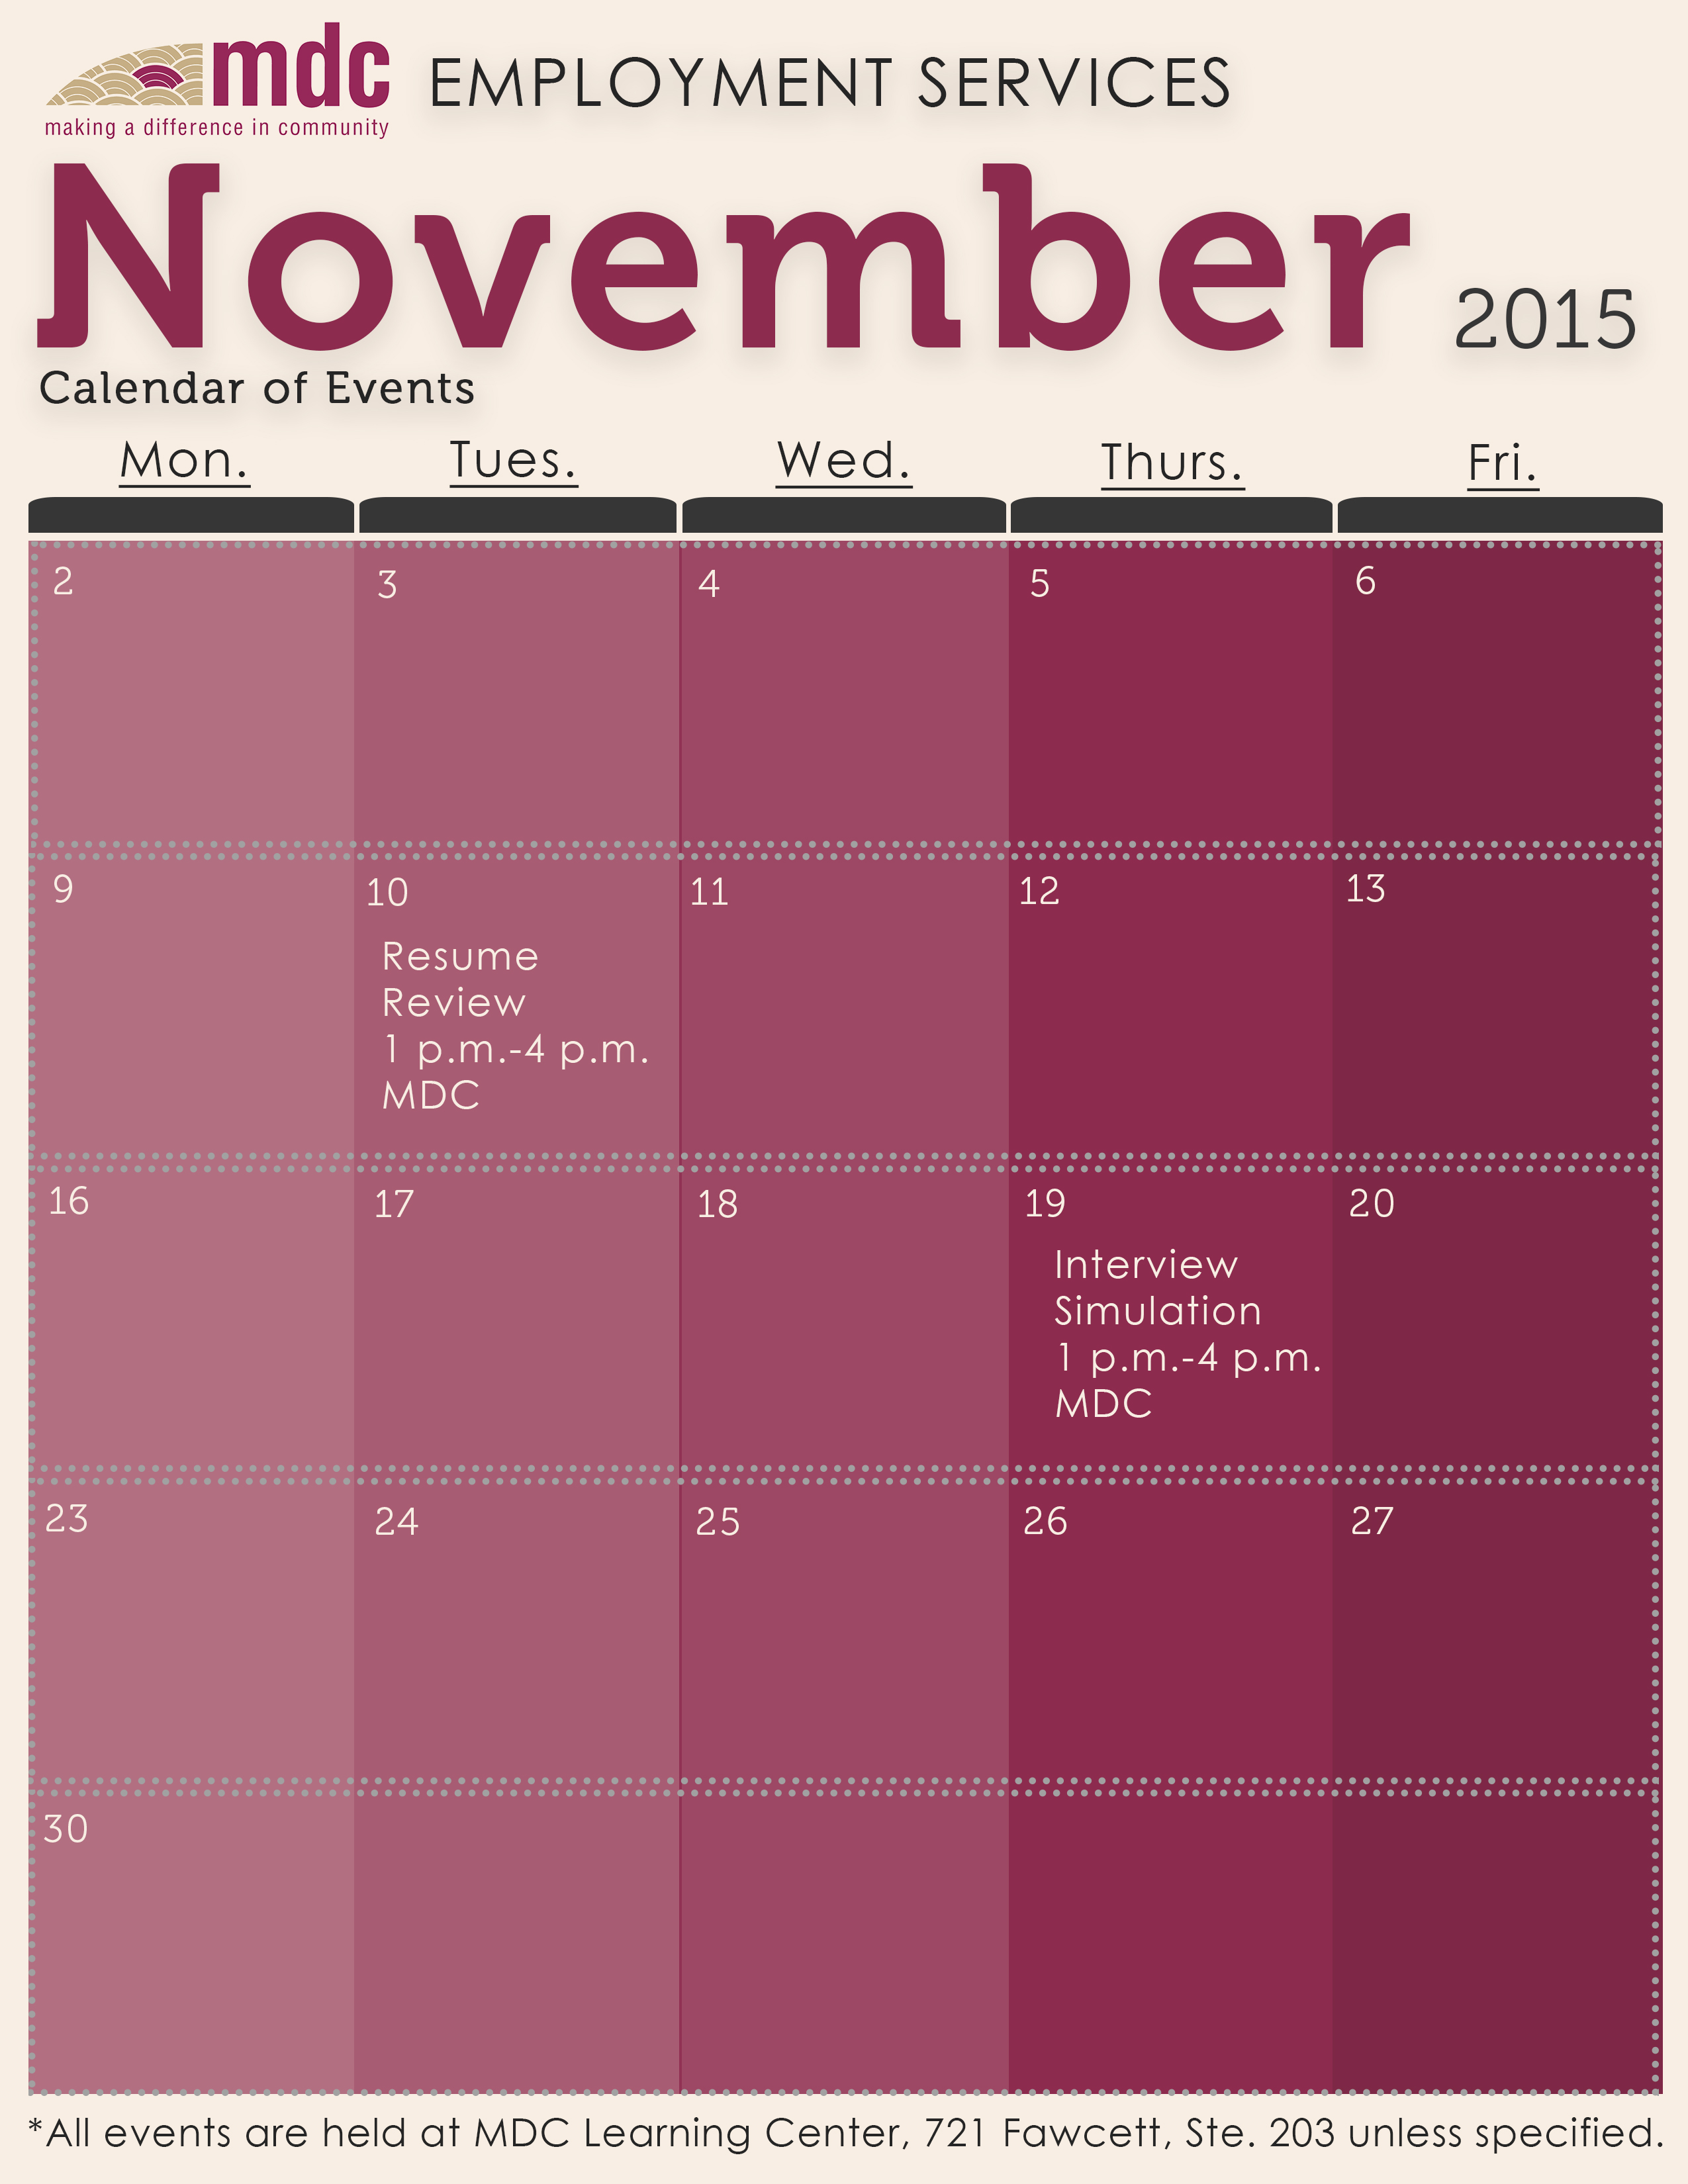 Employment Events Calendar Nov. 2015[5]